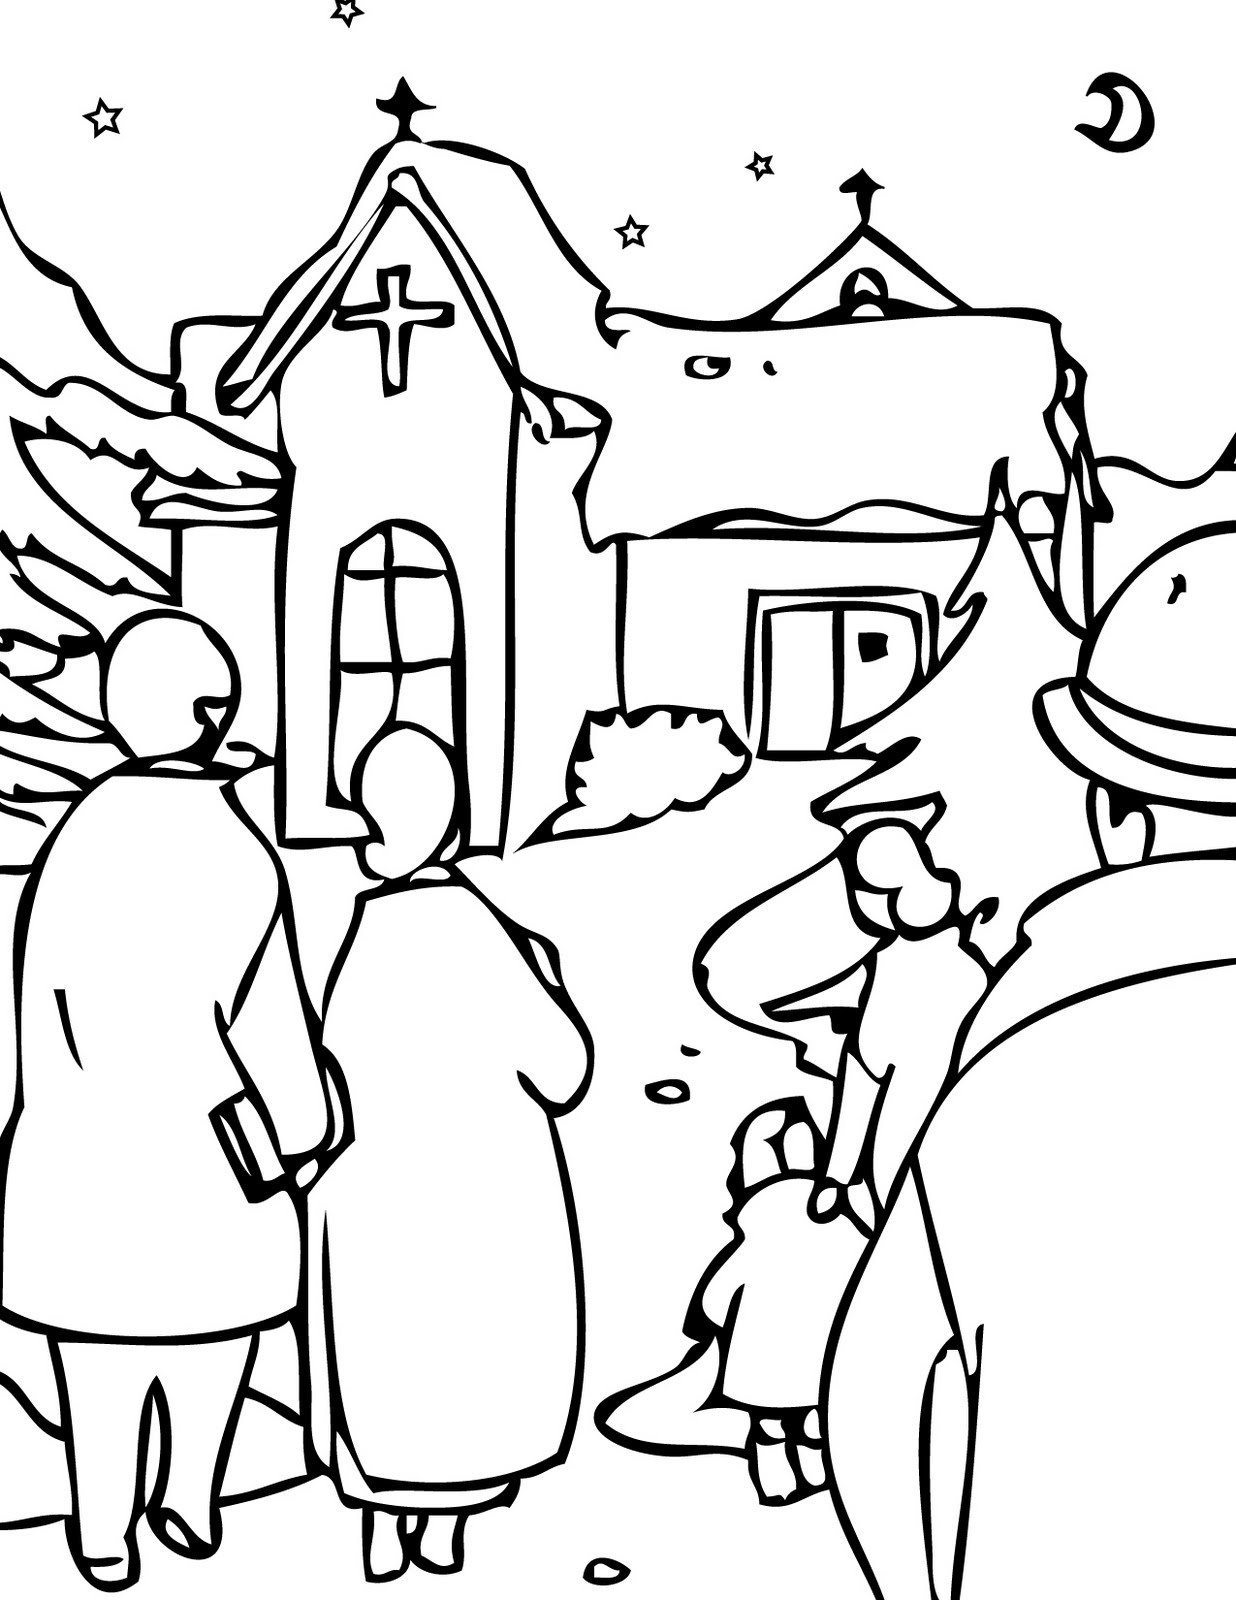 coloring pages on christmas - photo#50